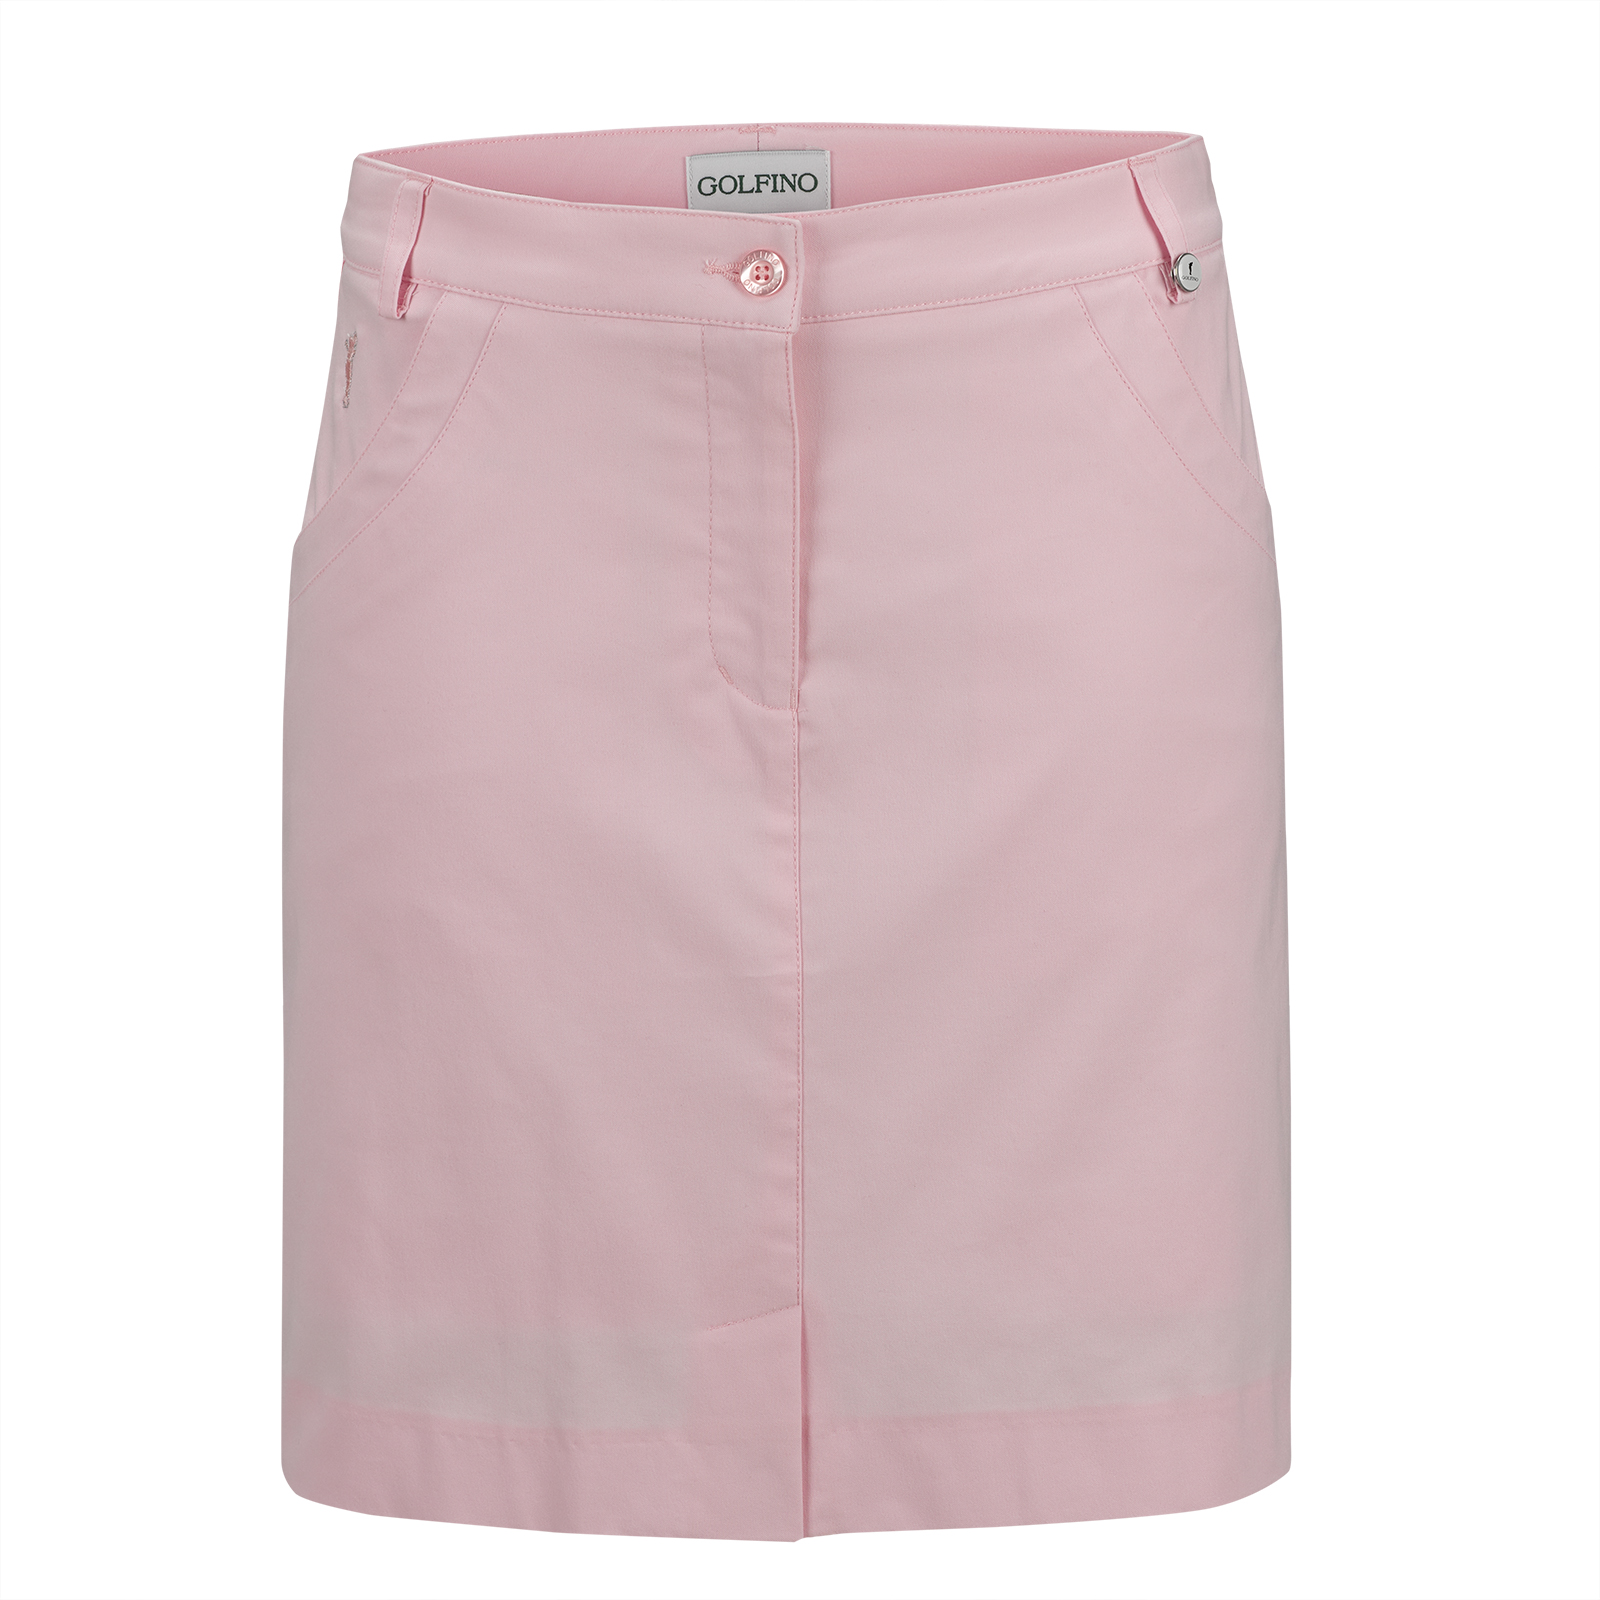 Cotton-Blend Damen Medium Golfskort mit innenliegenden Shorts